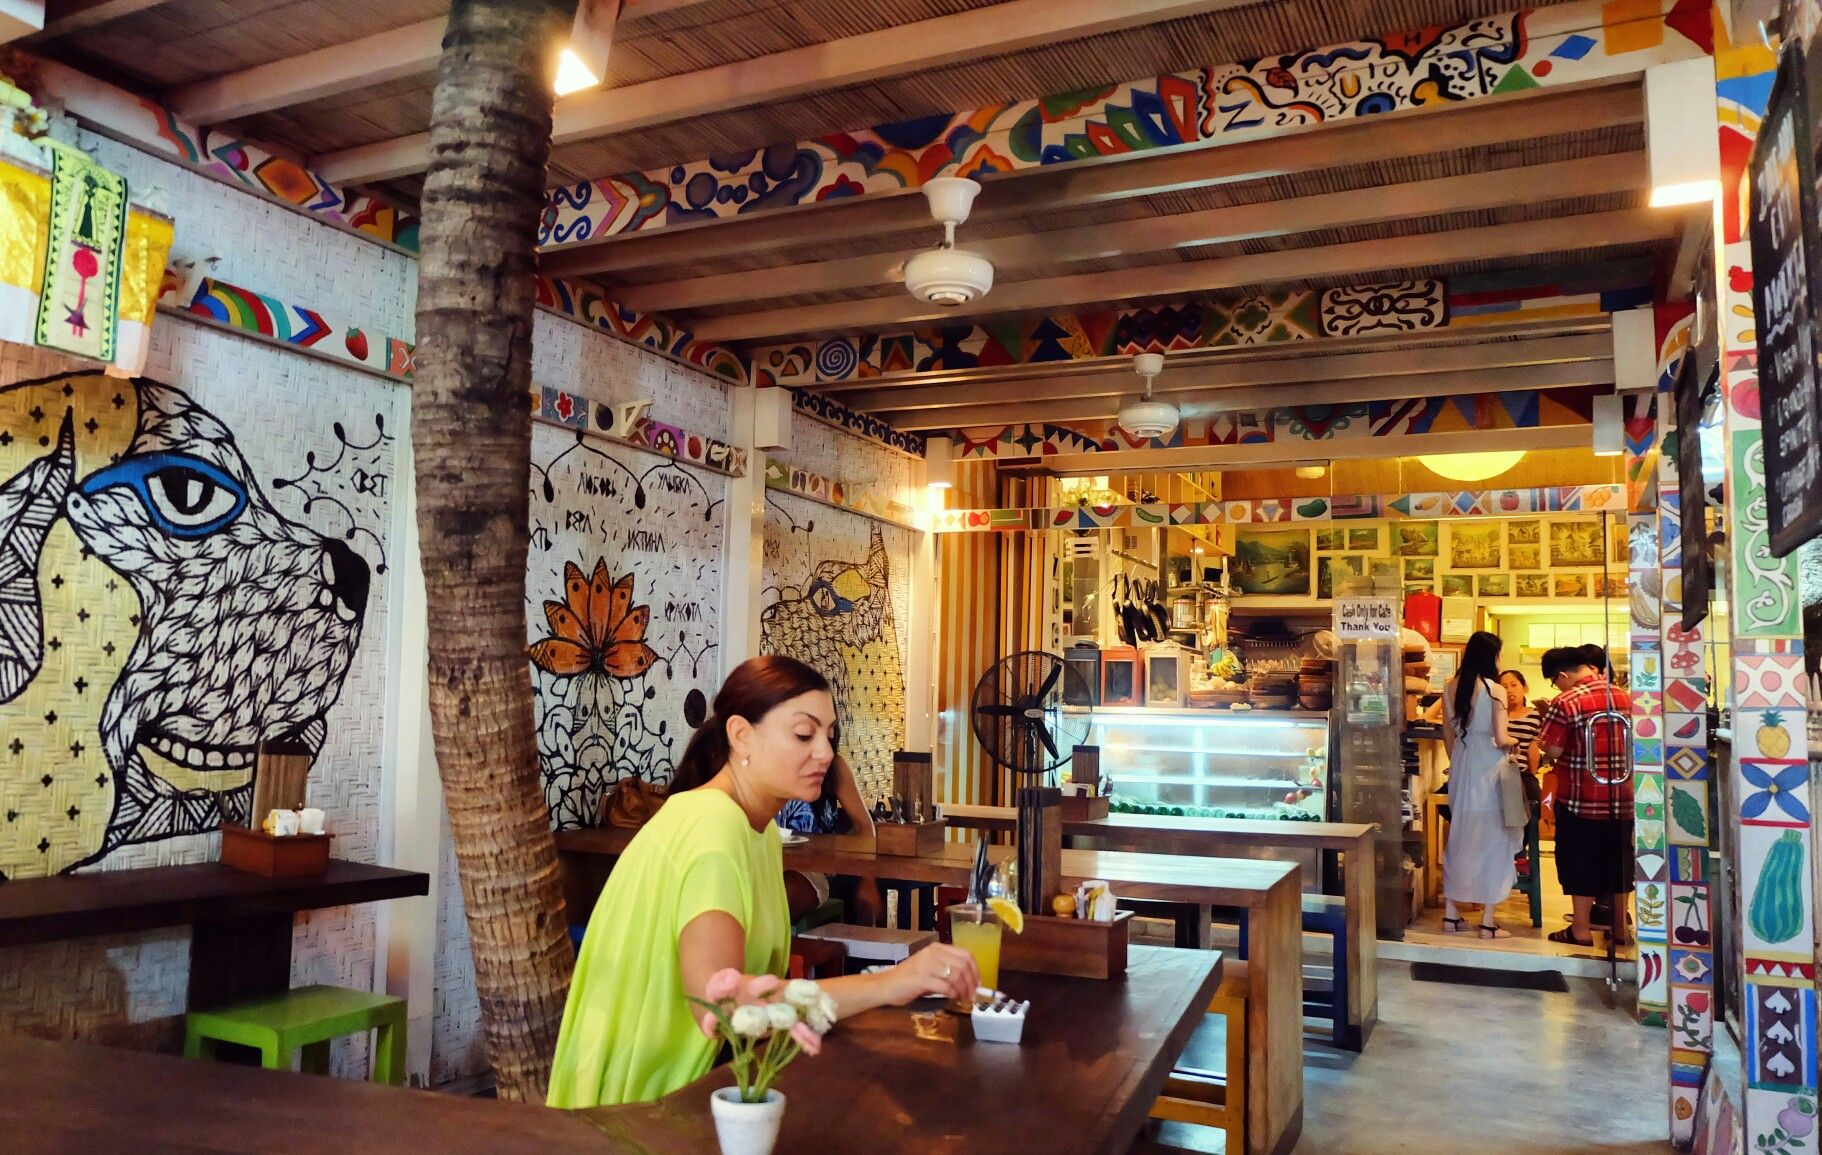 A very cozy place to hang out in Seminyak, Bali. Look at